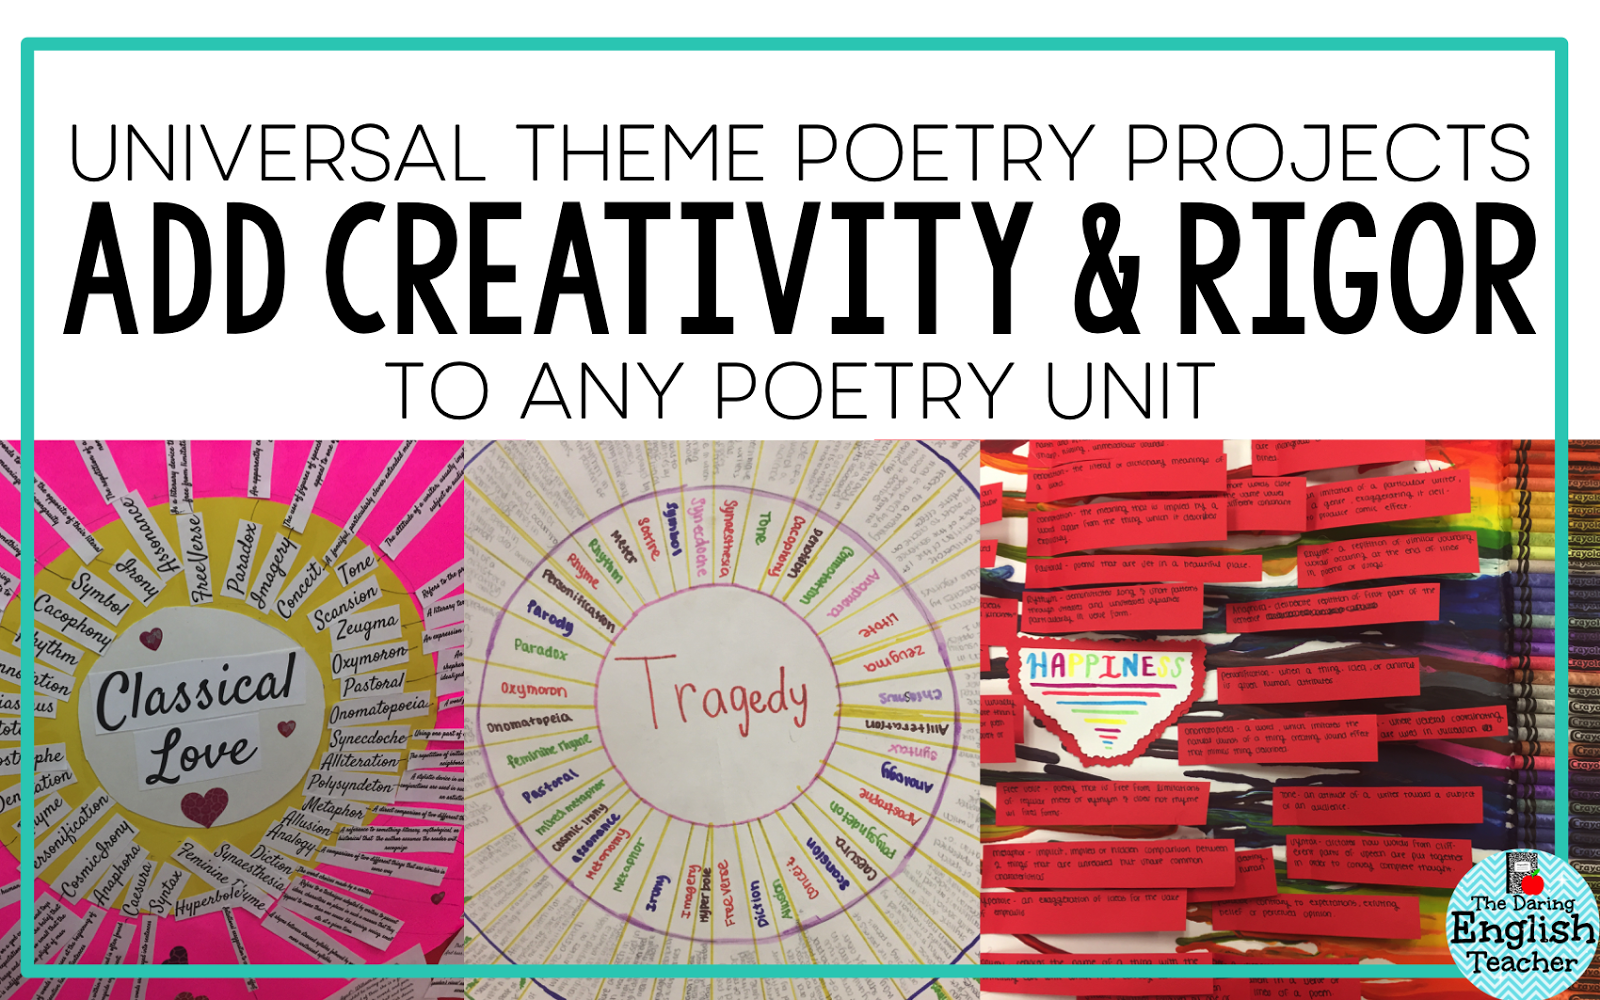 The Daring English Teacher Adding Creativity And Rigor To Poetry